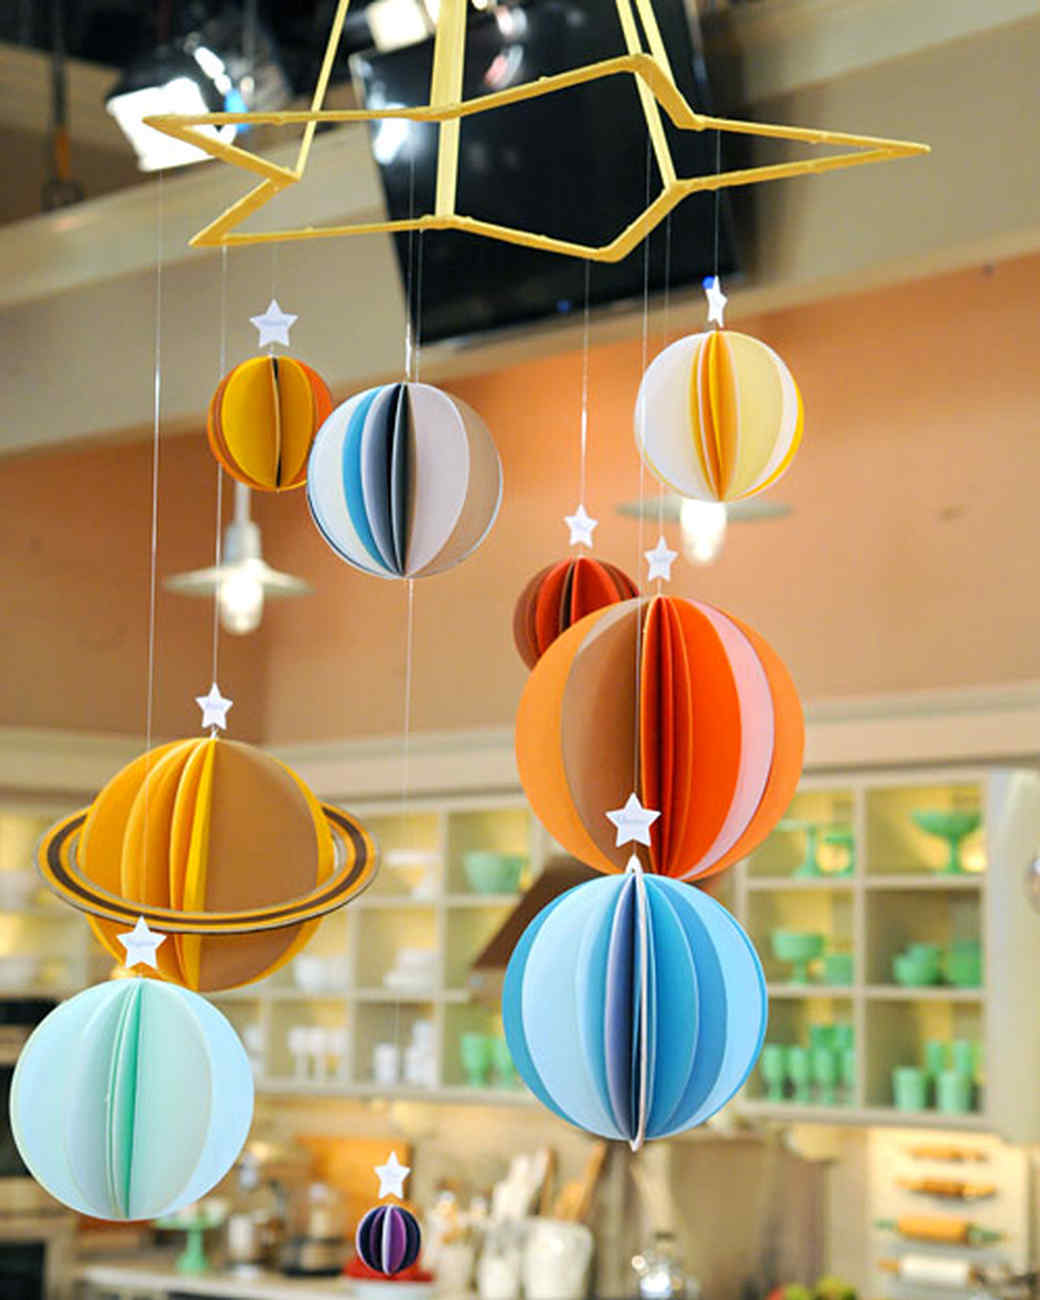 Solar System Mobile & Video | Martha Stewart